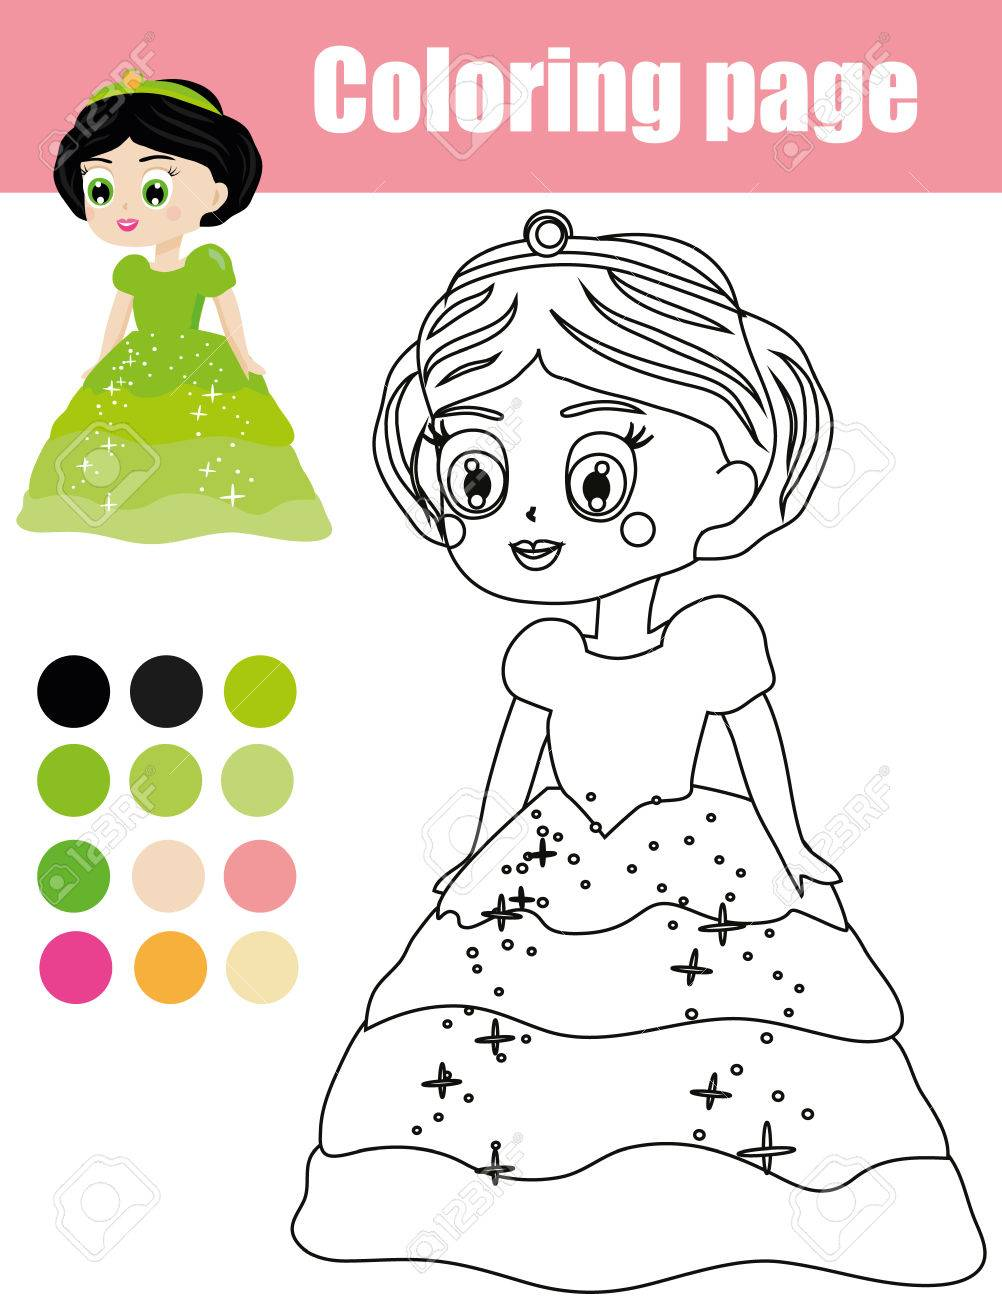 Coloring Page With Beautiful Princess Character Color The Picture Educational Children Game Drawing